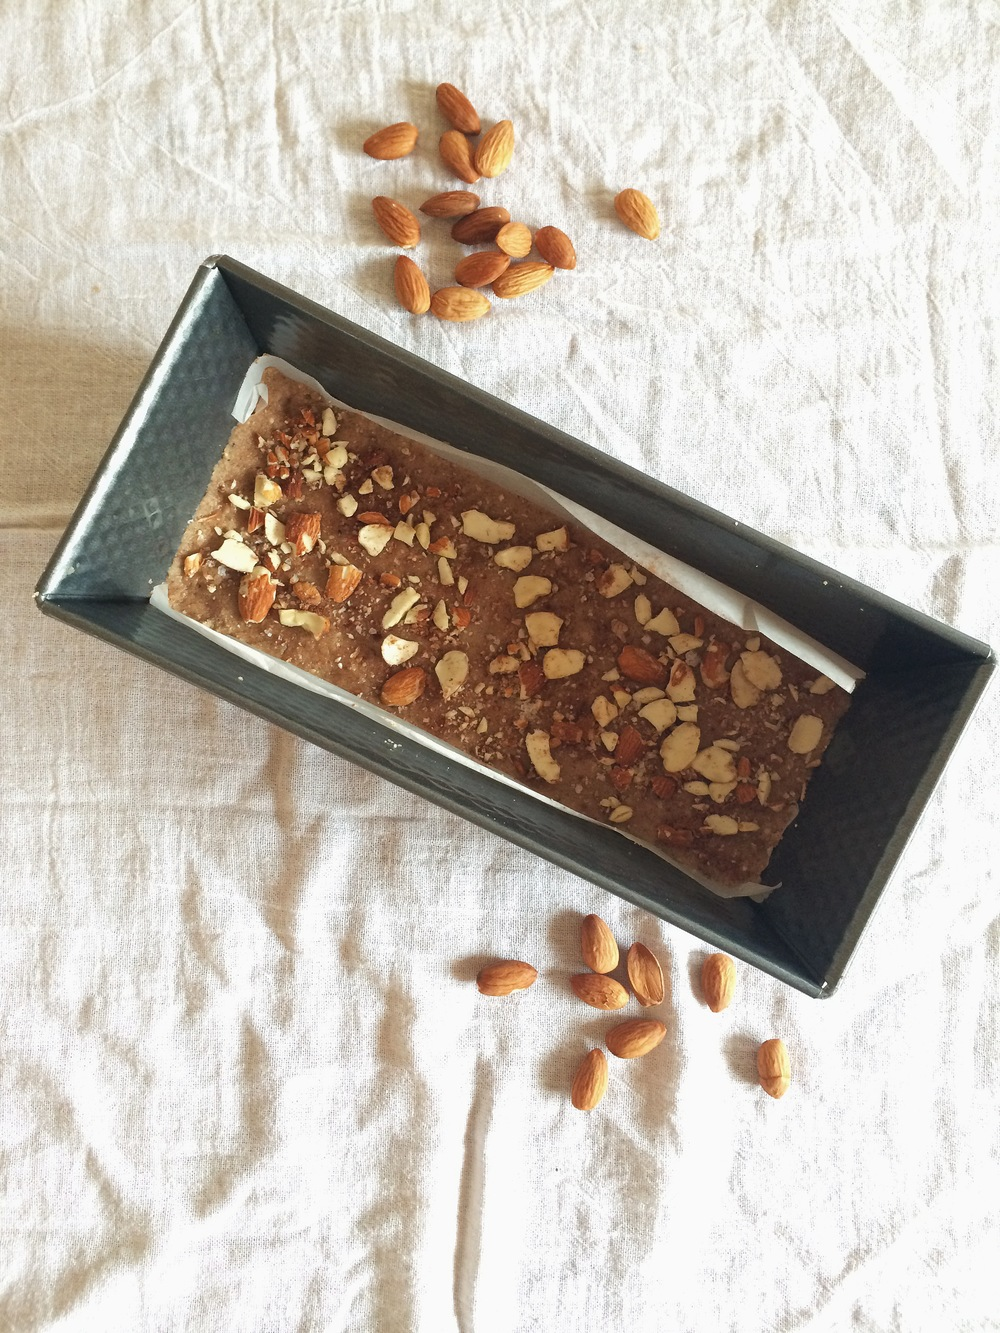 Cinnamon Almond Fudge - gluten free, grain free, vegan - My Natural Kitchen